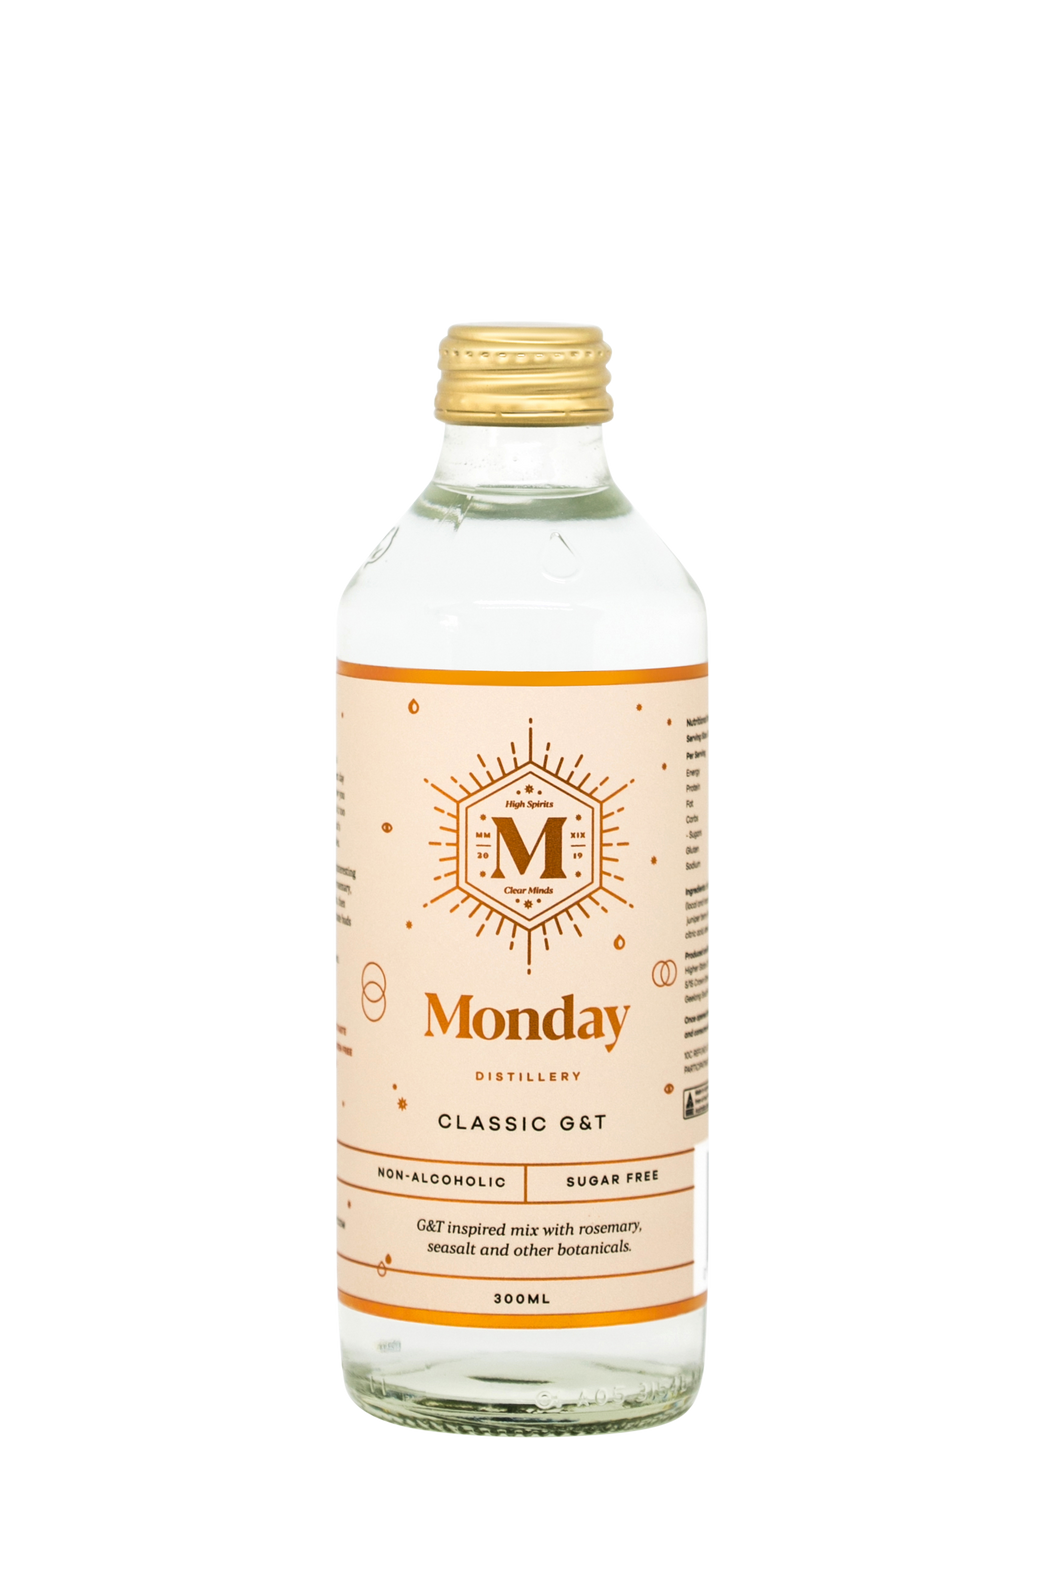 Monday Distillery Non-Alcoholic Classic G&T (8/24 Bottles) FREE SHIPPING